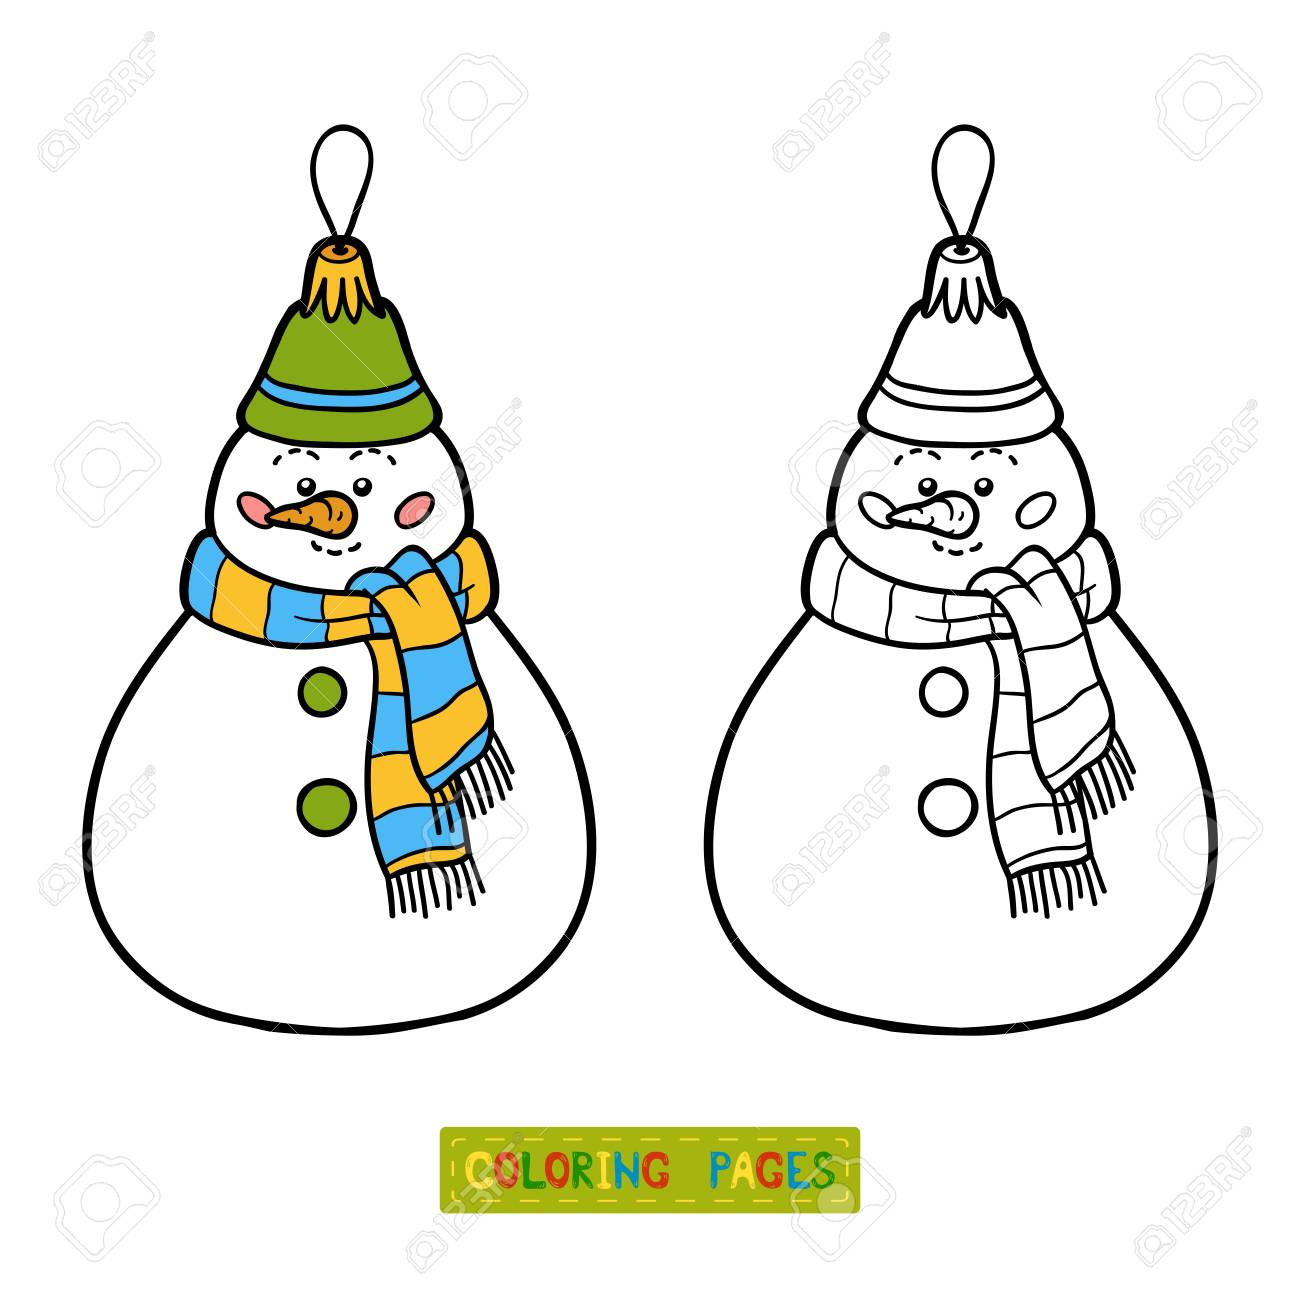 Coloring Book For Children Christmas Tree Toy Snowman Stock Vector